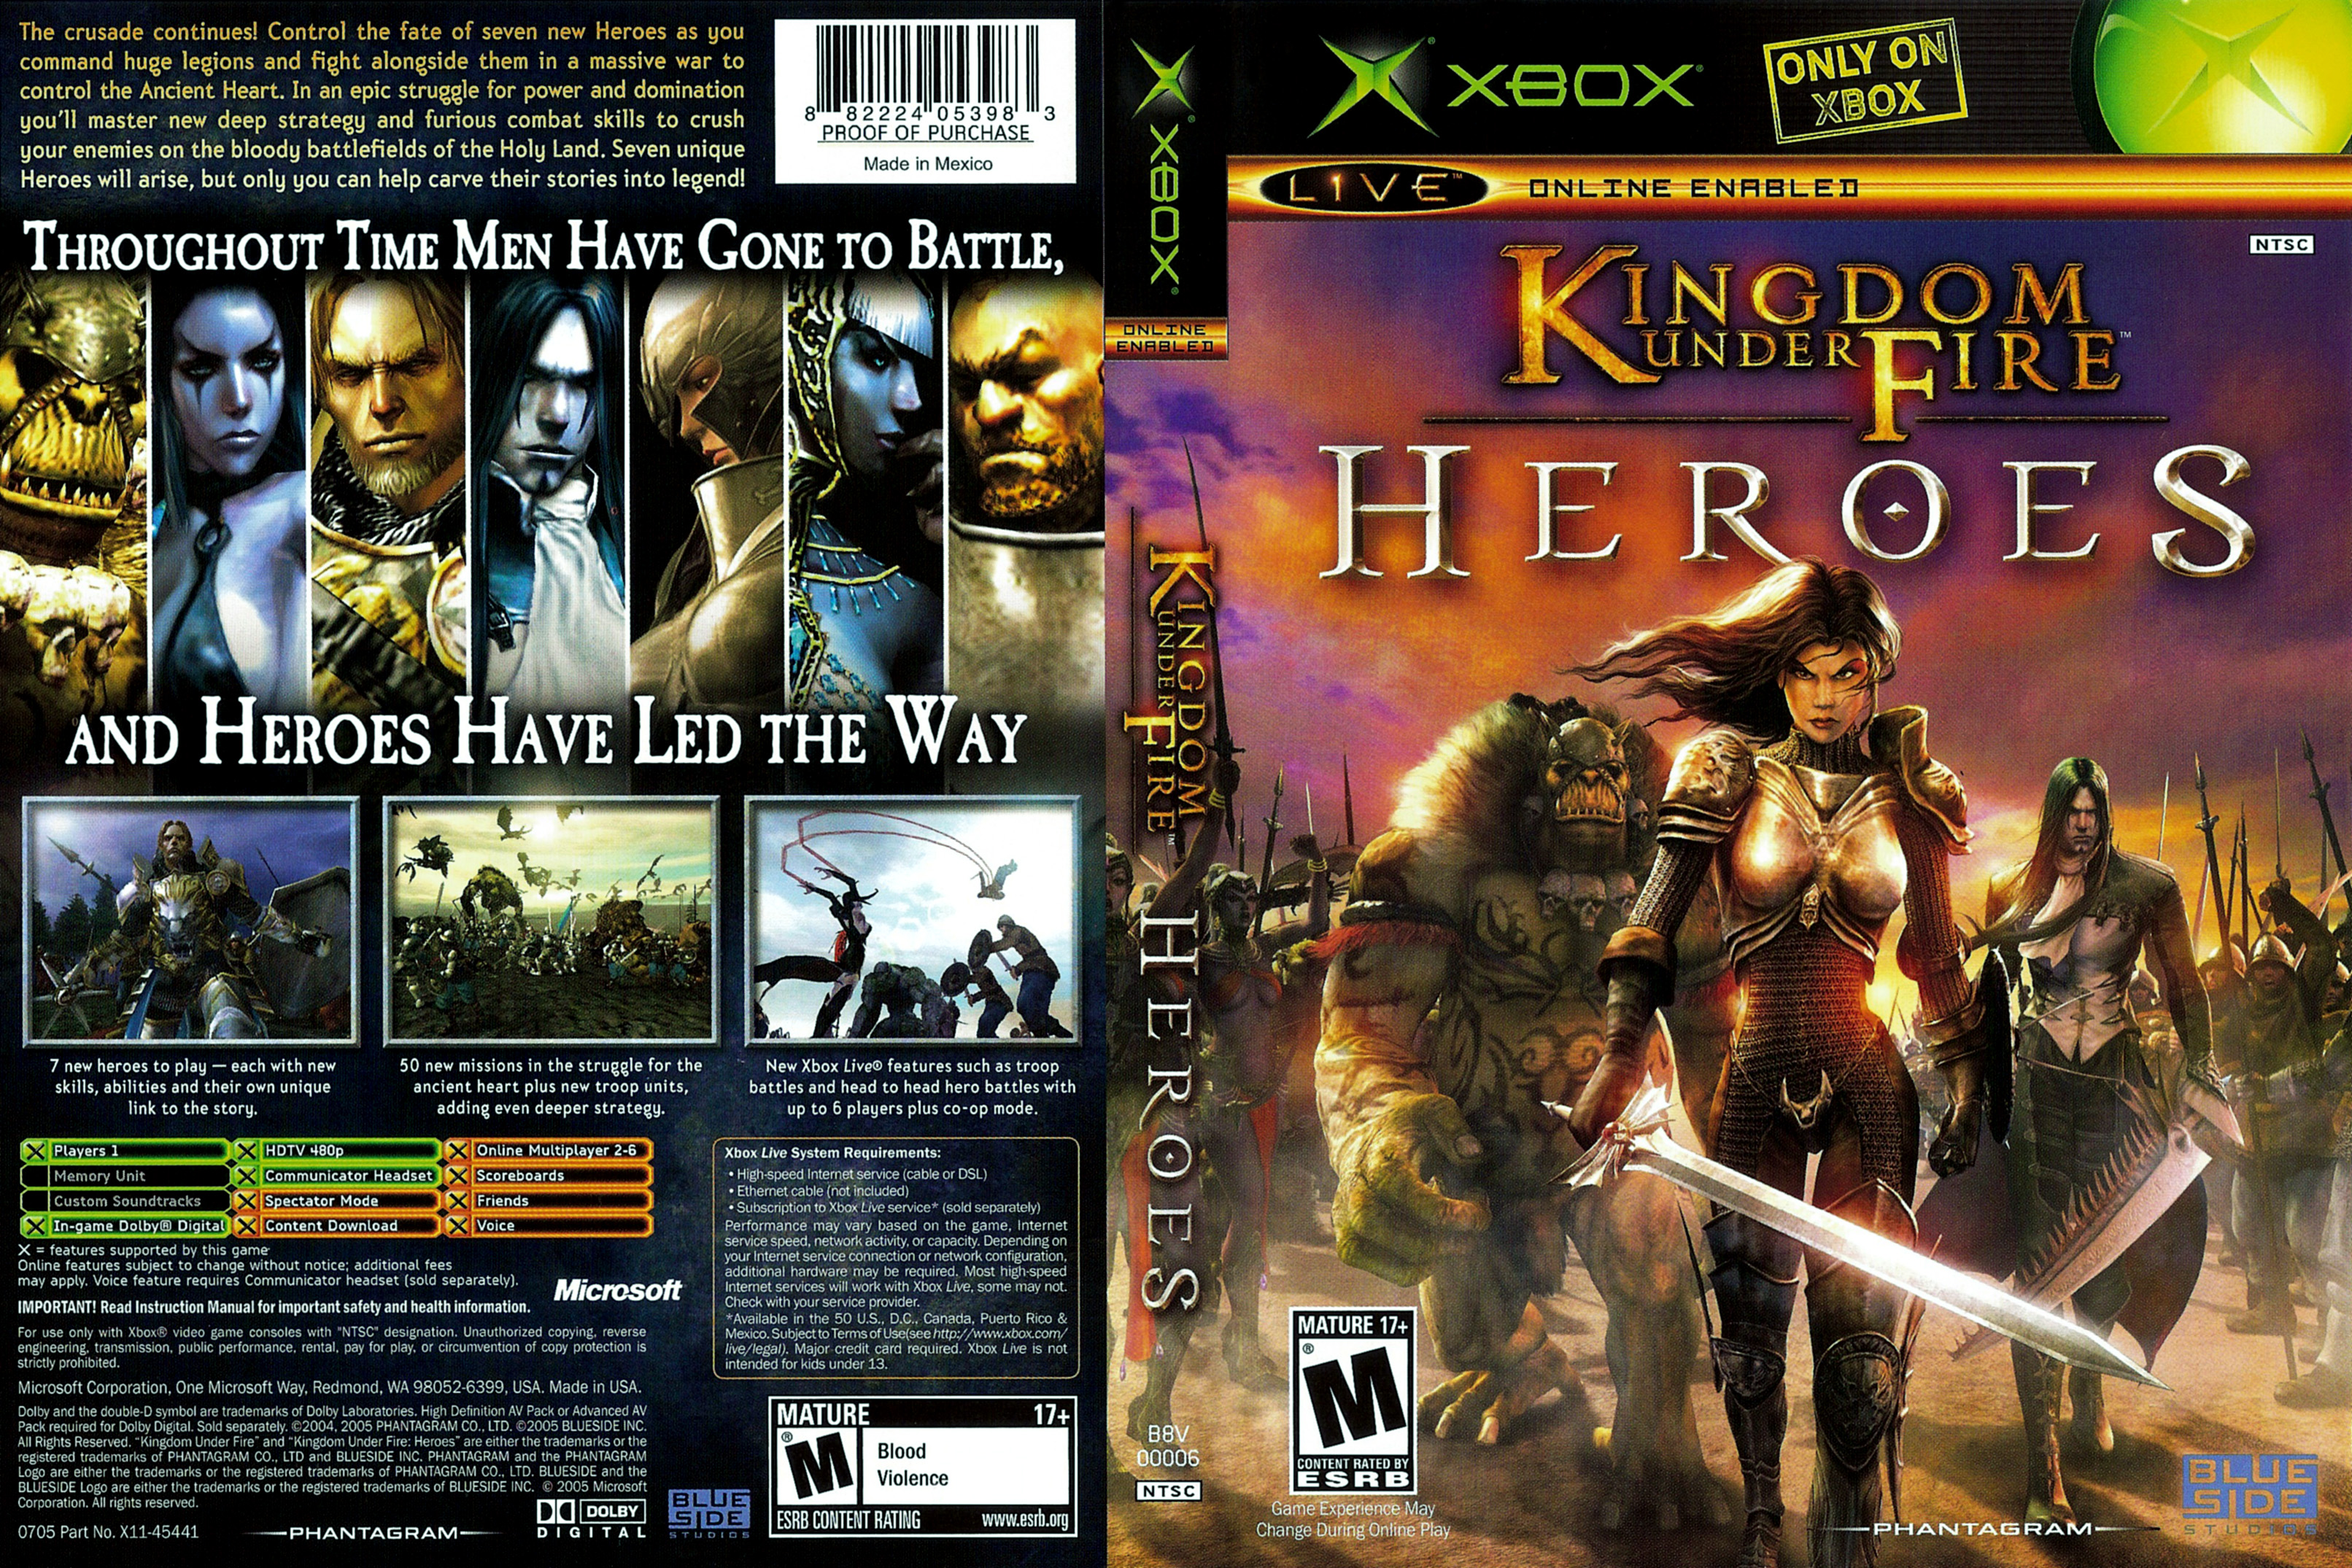 Kingdom Under Fire Heroes - Xbox